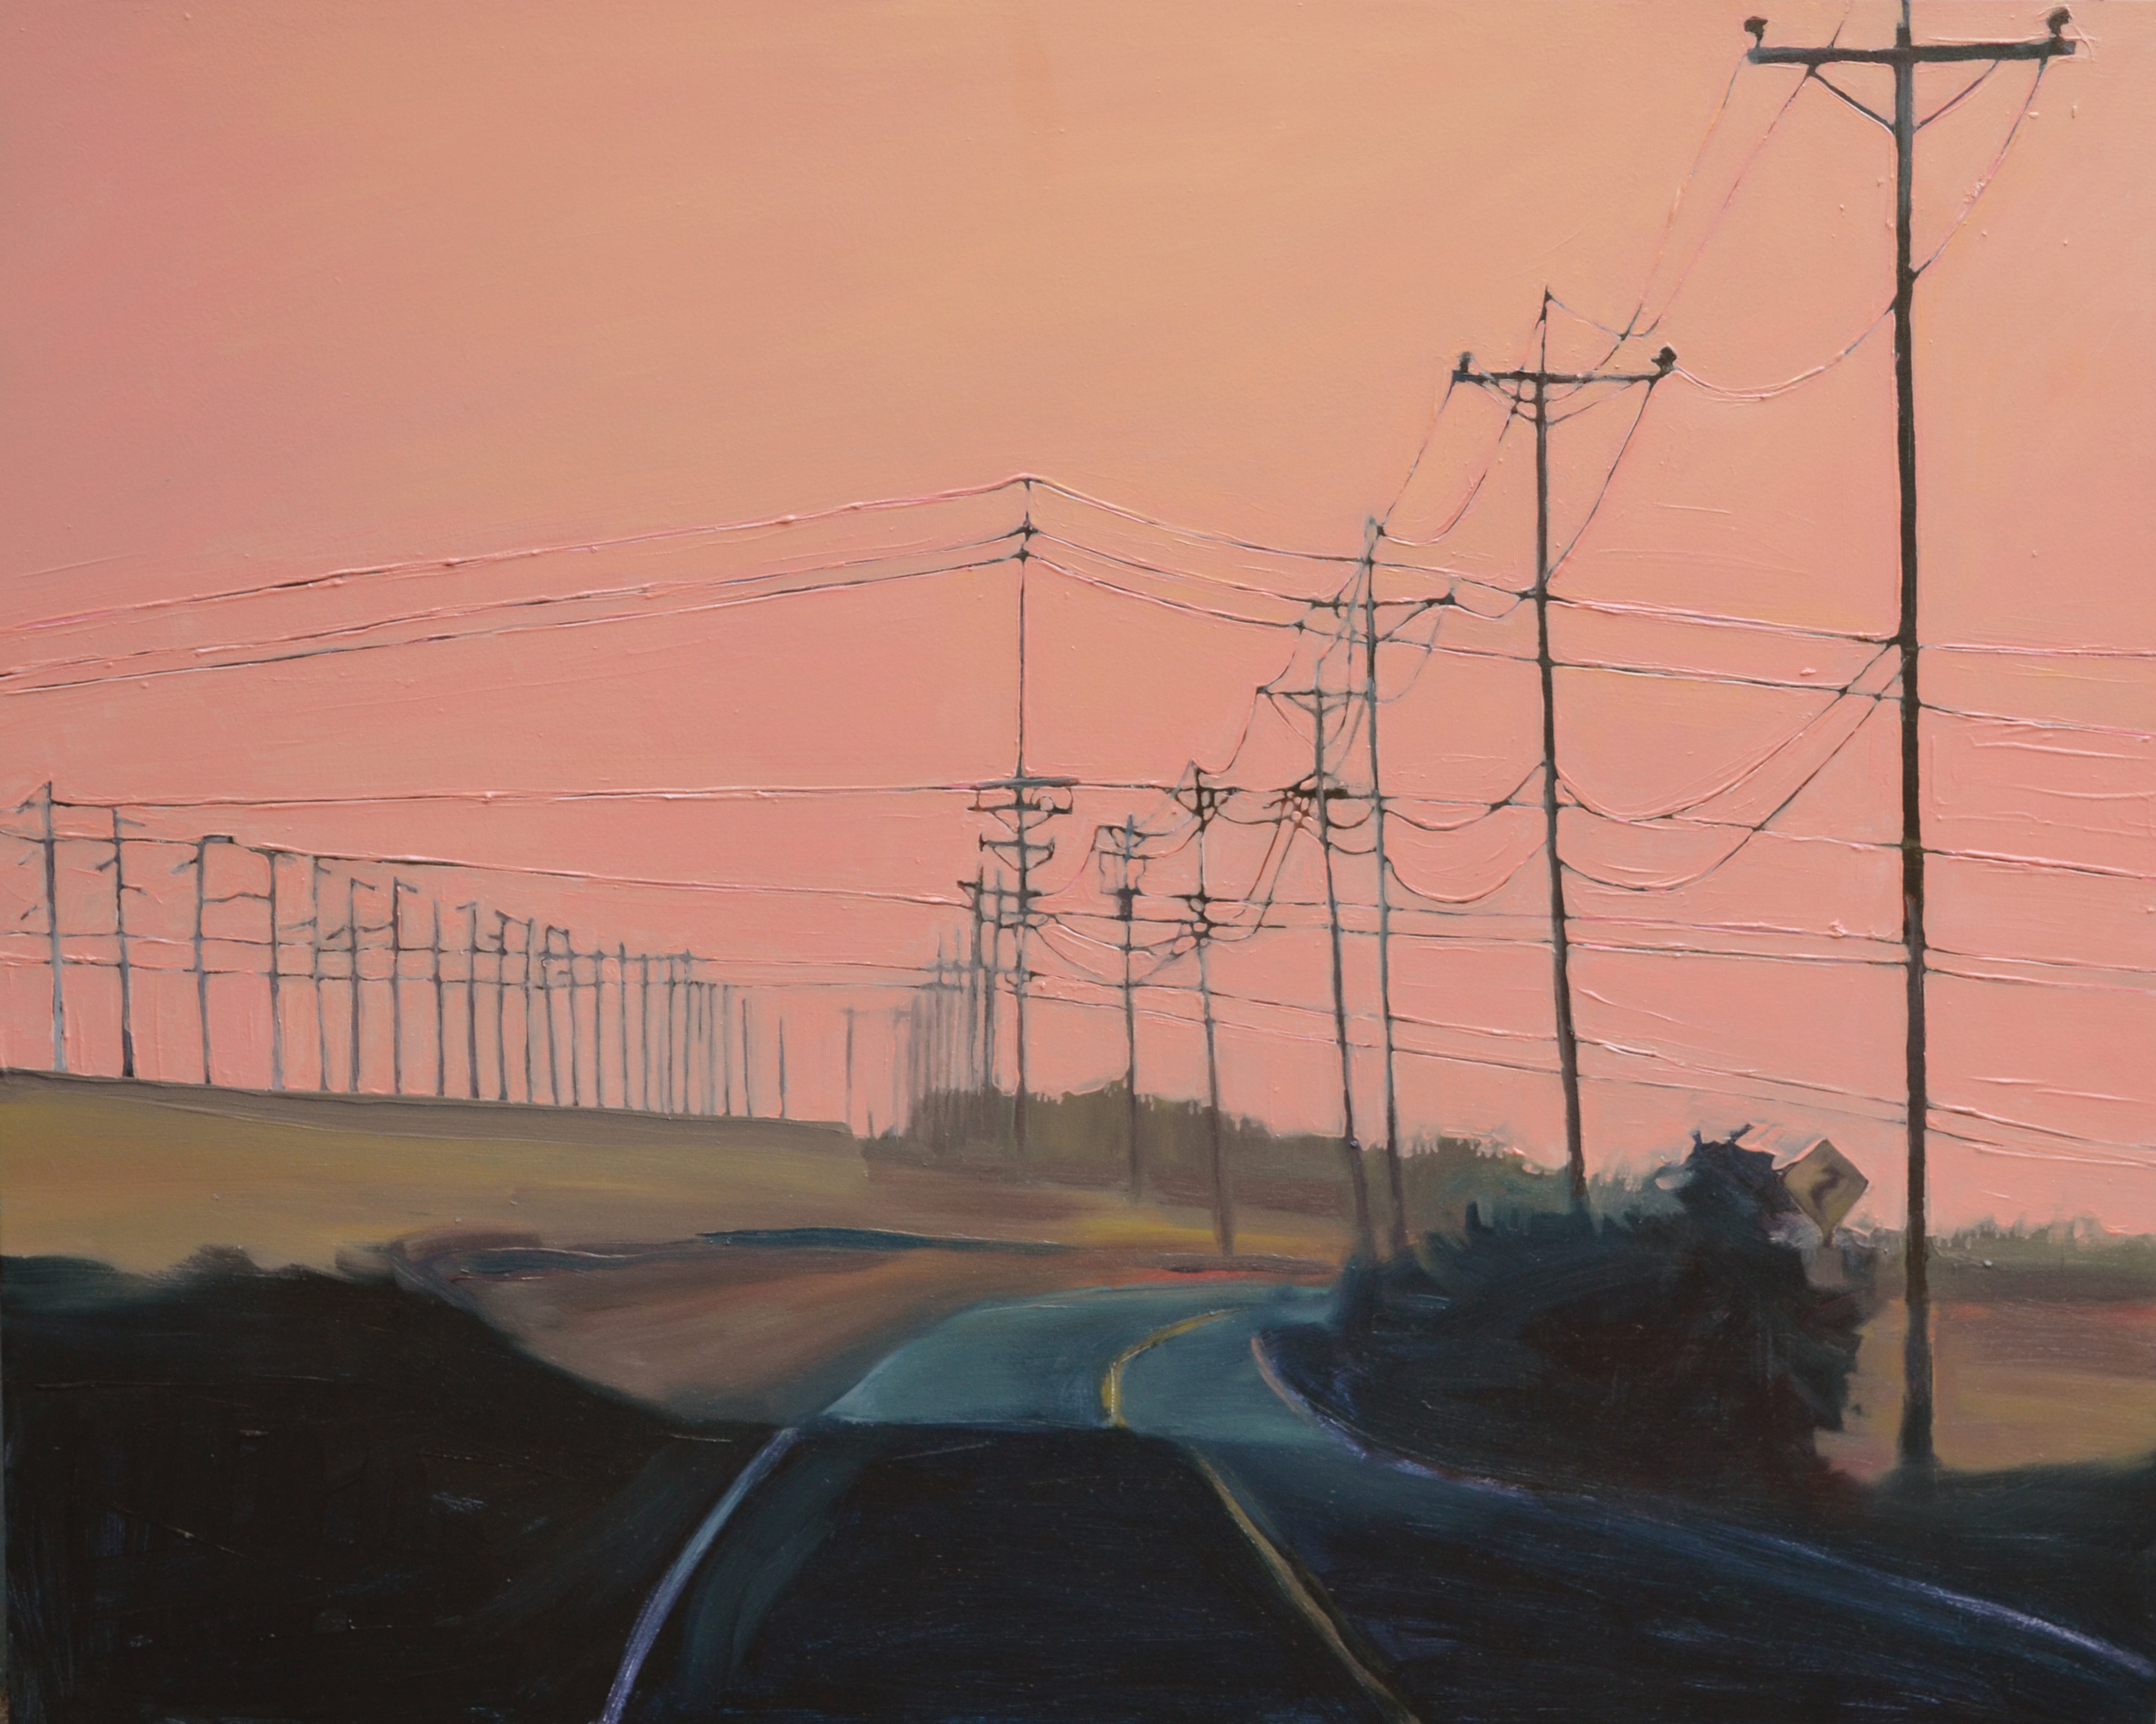 Road 29's Bend . 2015. Oil on panel. 18 x 24 inches. sold